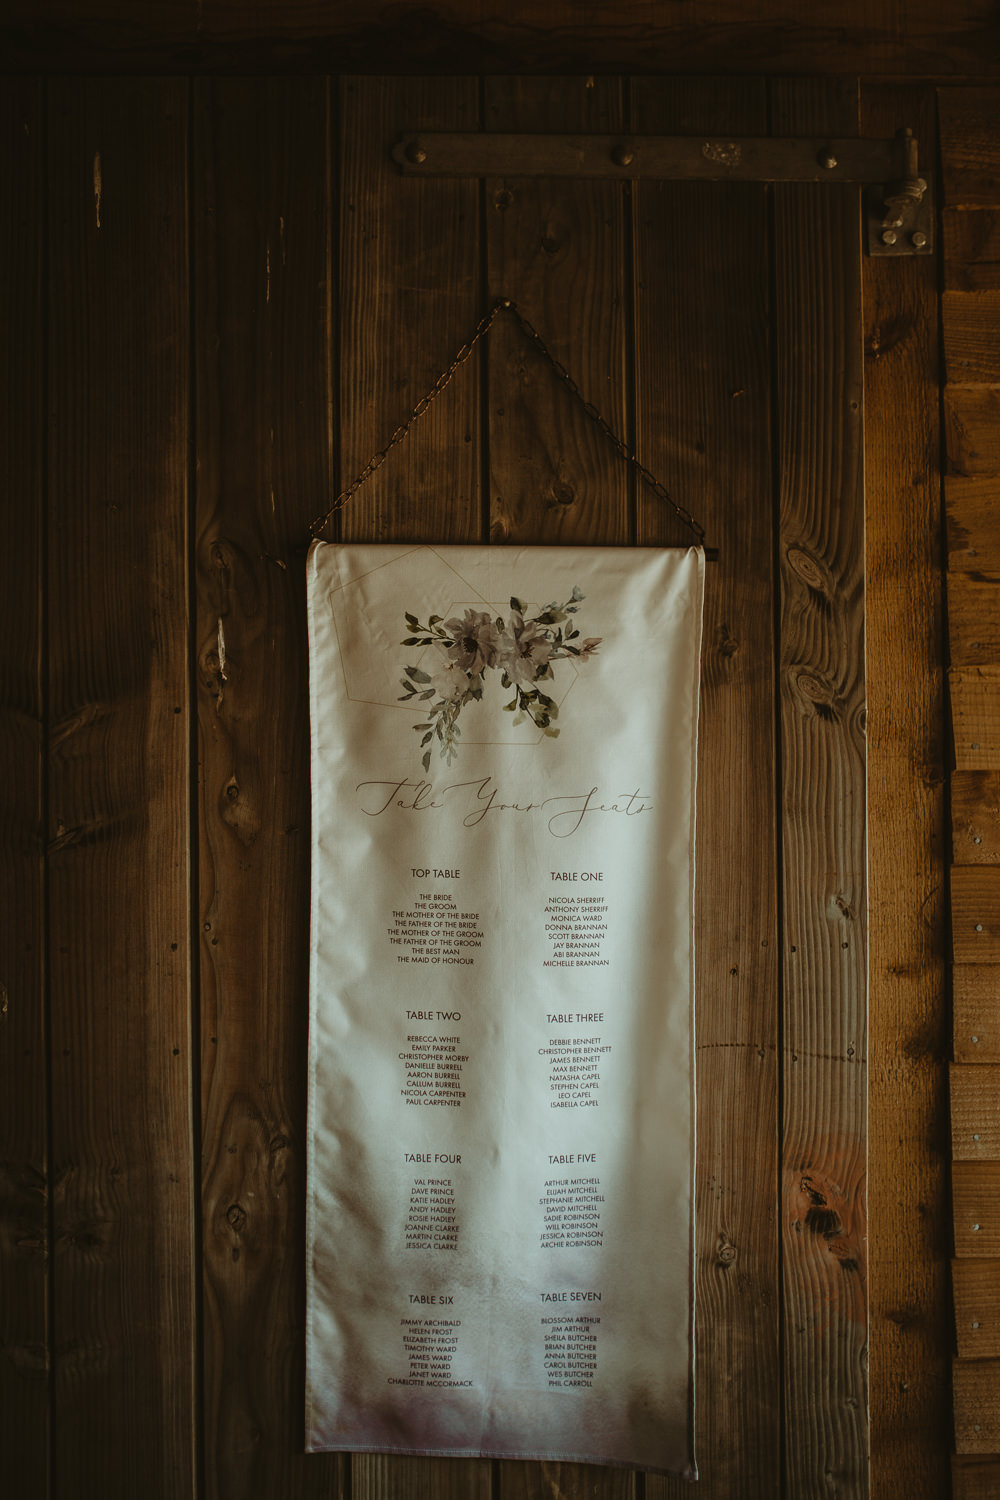 Fabric Banner Seating Plan Table Chart Calligraphy Blue Rich Romantic Wedding Ideas Daze of Glory Photography Catherine Spiller Photography